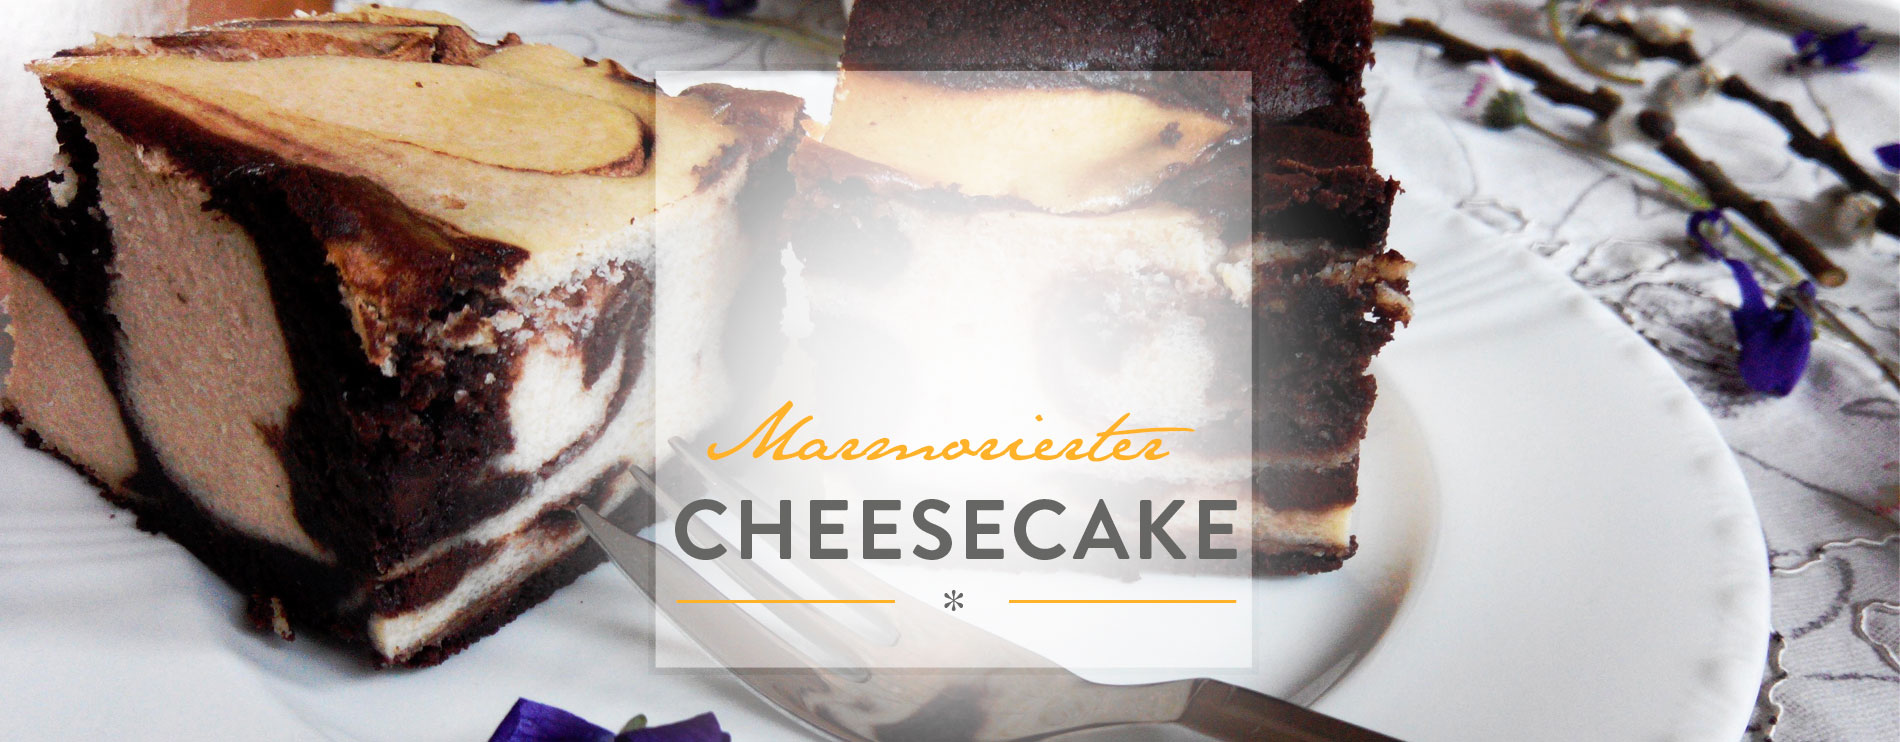 Header Marmorierter Cheesecake